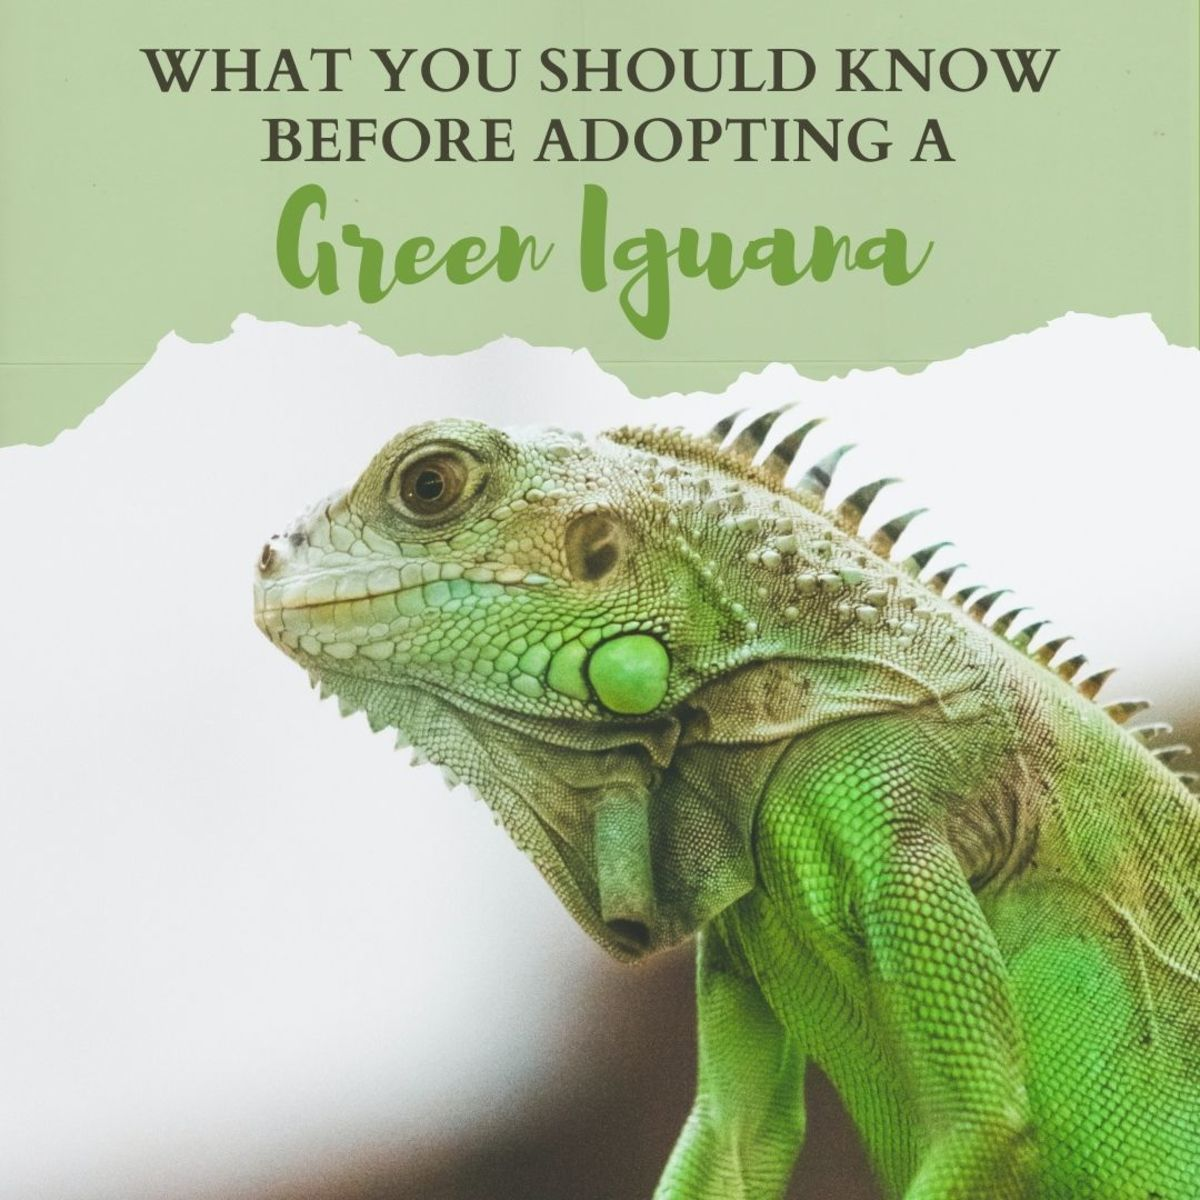 Things you should know about green iguanas before getting one as a pet